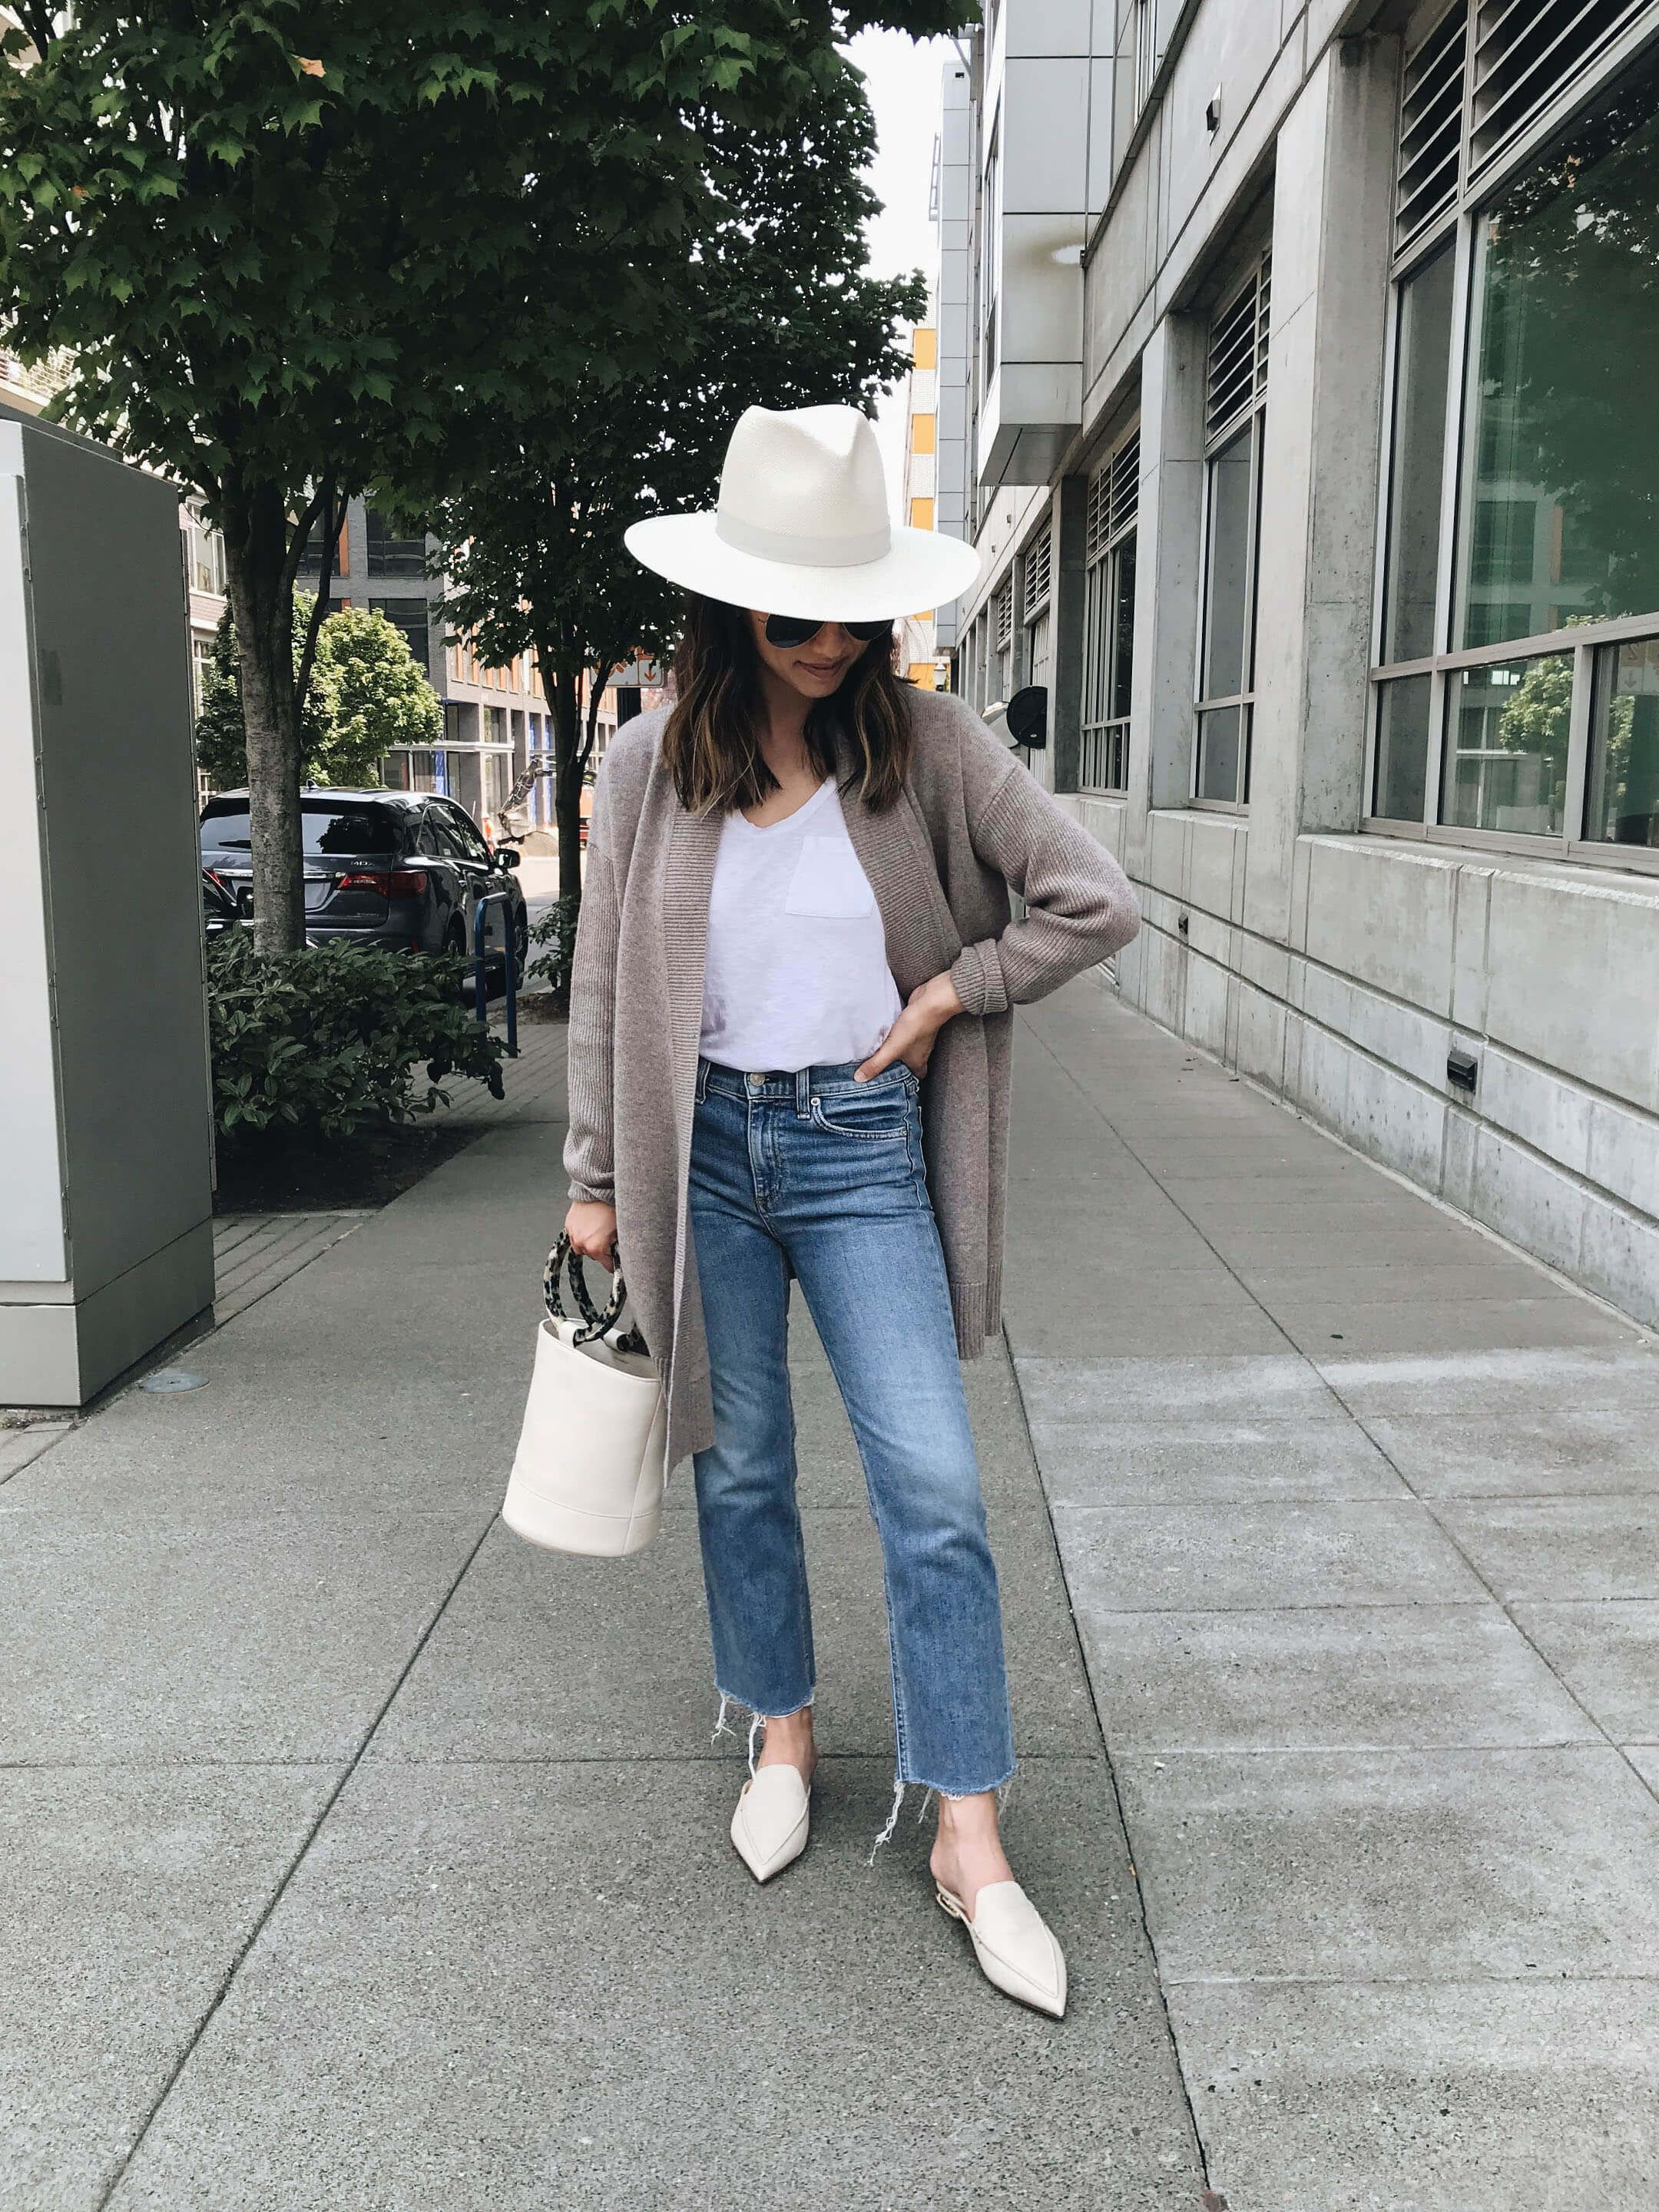 Communication on this topic: Outfit Ideas for the Fall-to-Winter Transition, outfit-ideas-for-the-fall-to-winter-transition/